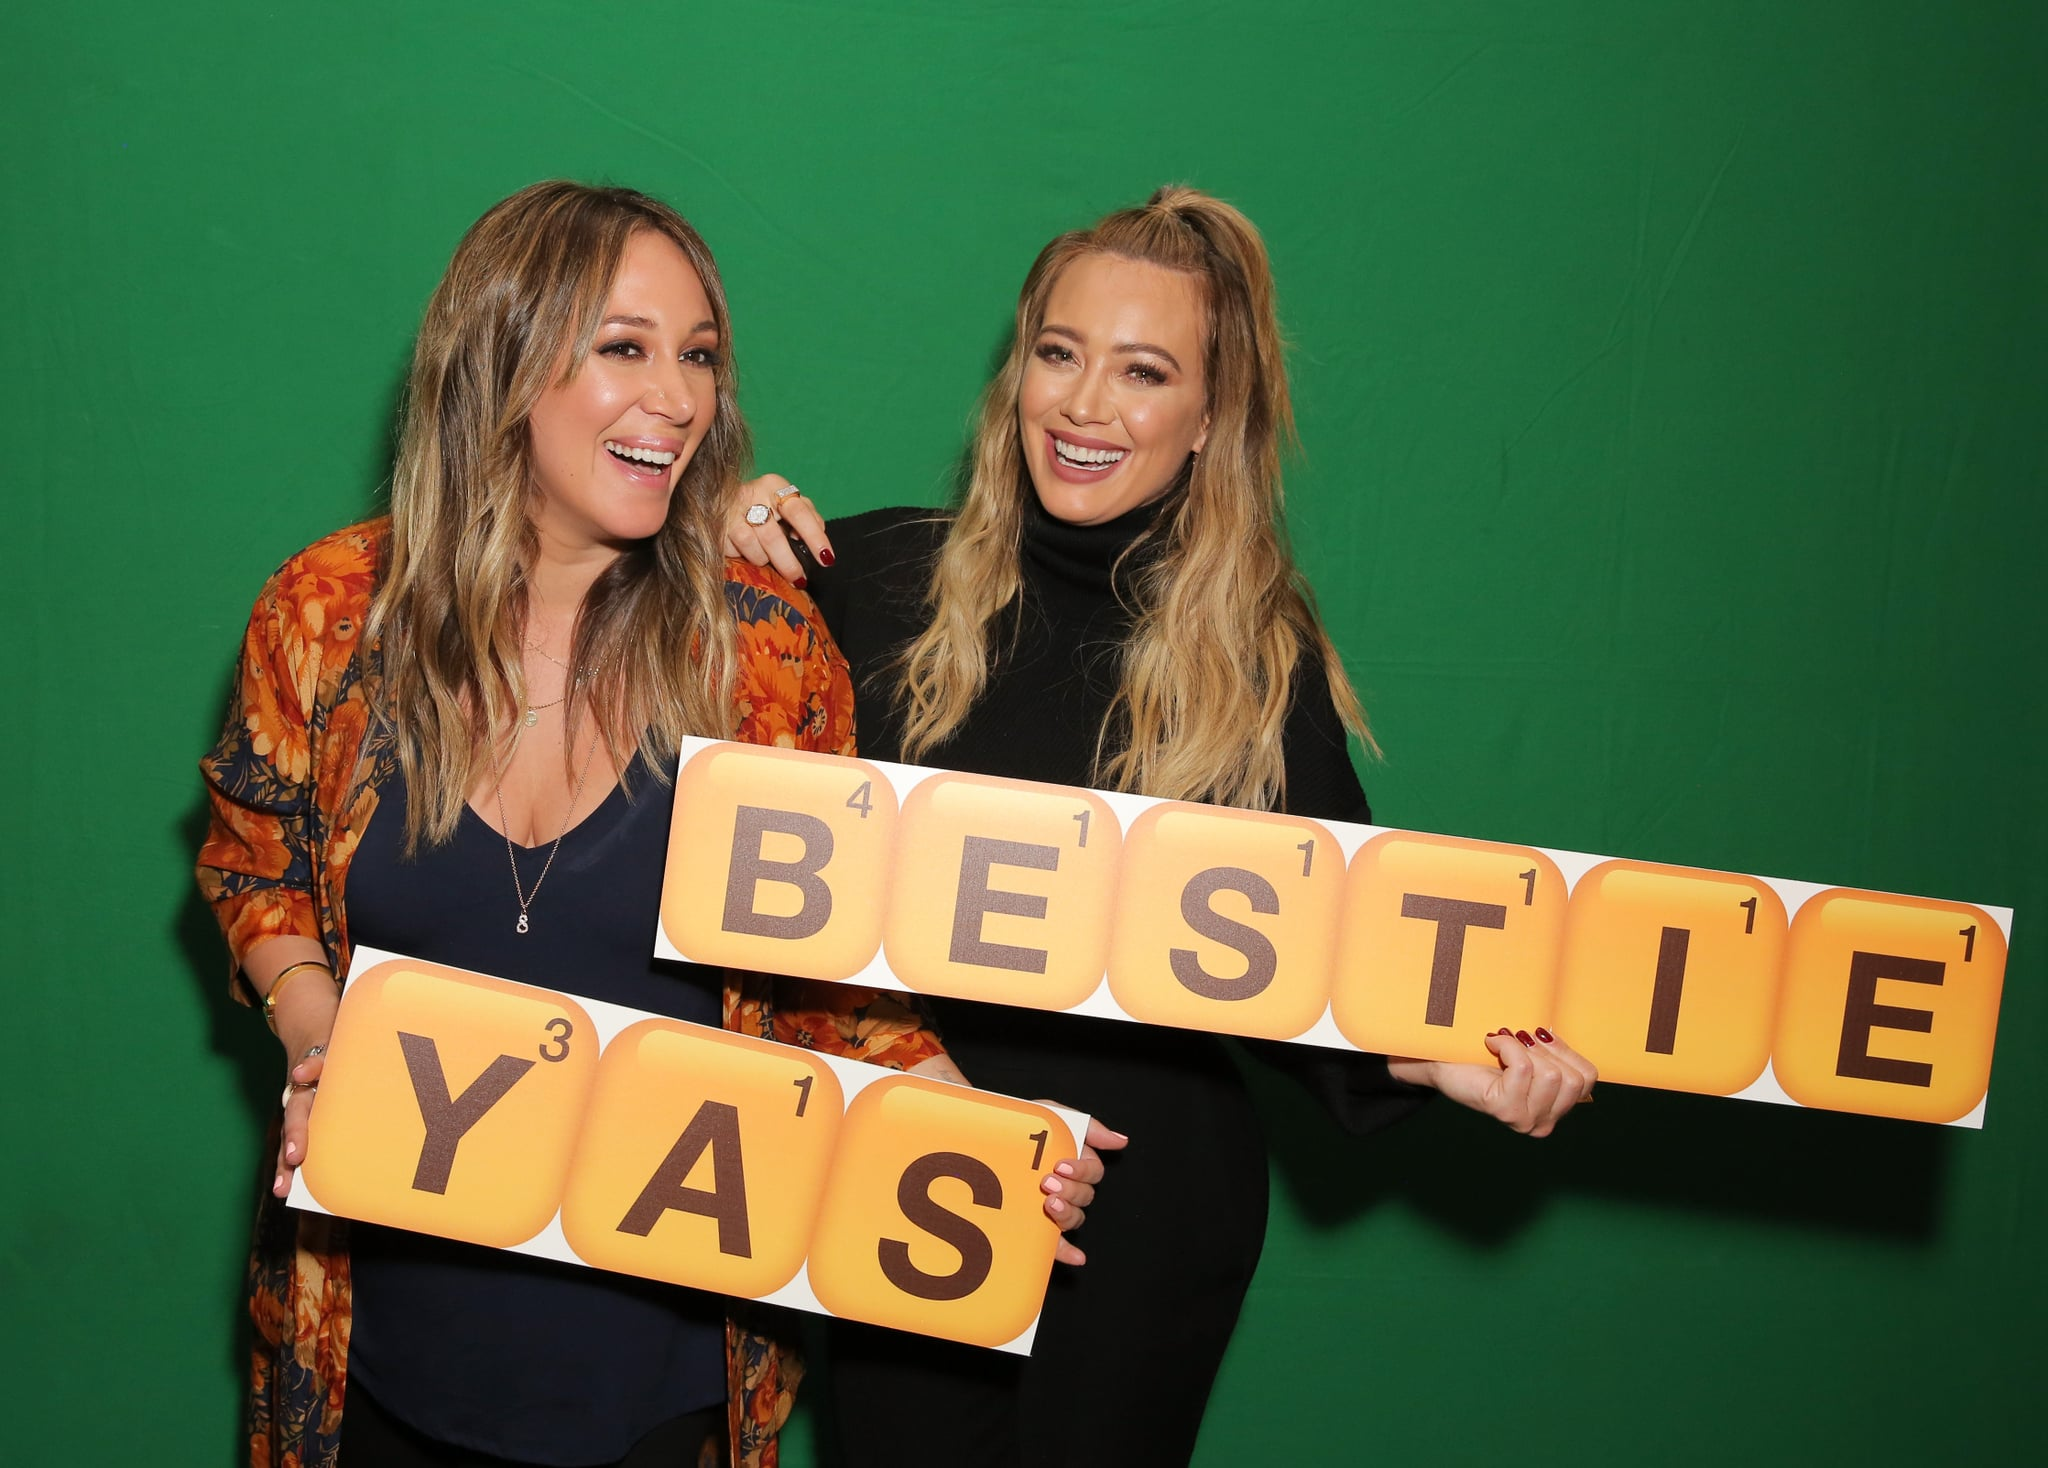 WEST HOLLYWOOD, CA - NOVEMBER 09:  Haylie Duff (L) and Hilary Duff attend the Launch of Words with Friends 2 hosted by Hilary and Haylie Duff at Norah Restaurant on November 9, 2017 in West Hollywood, California.  (Photo by Rachel Murray/Getty Images for Words with Friends 2 )